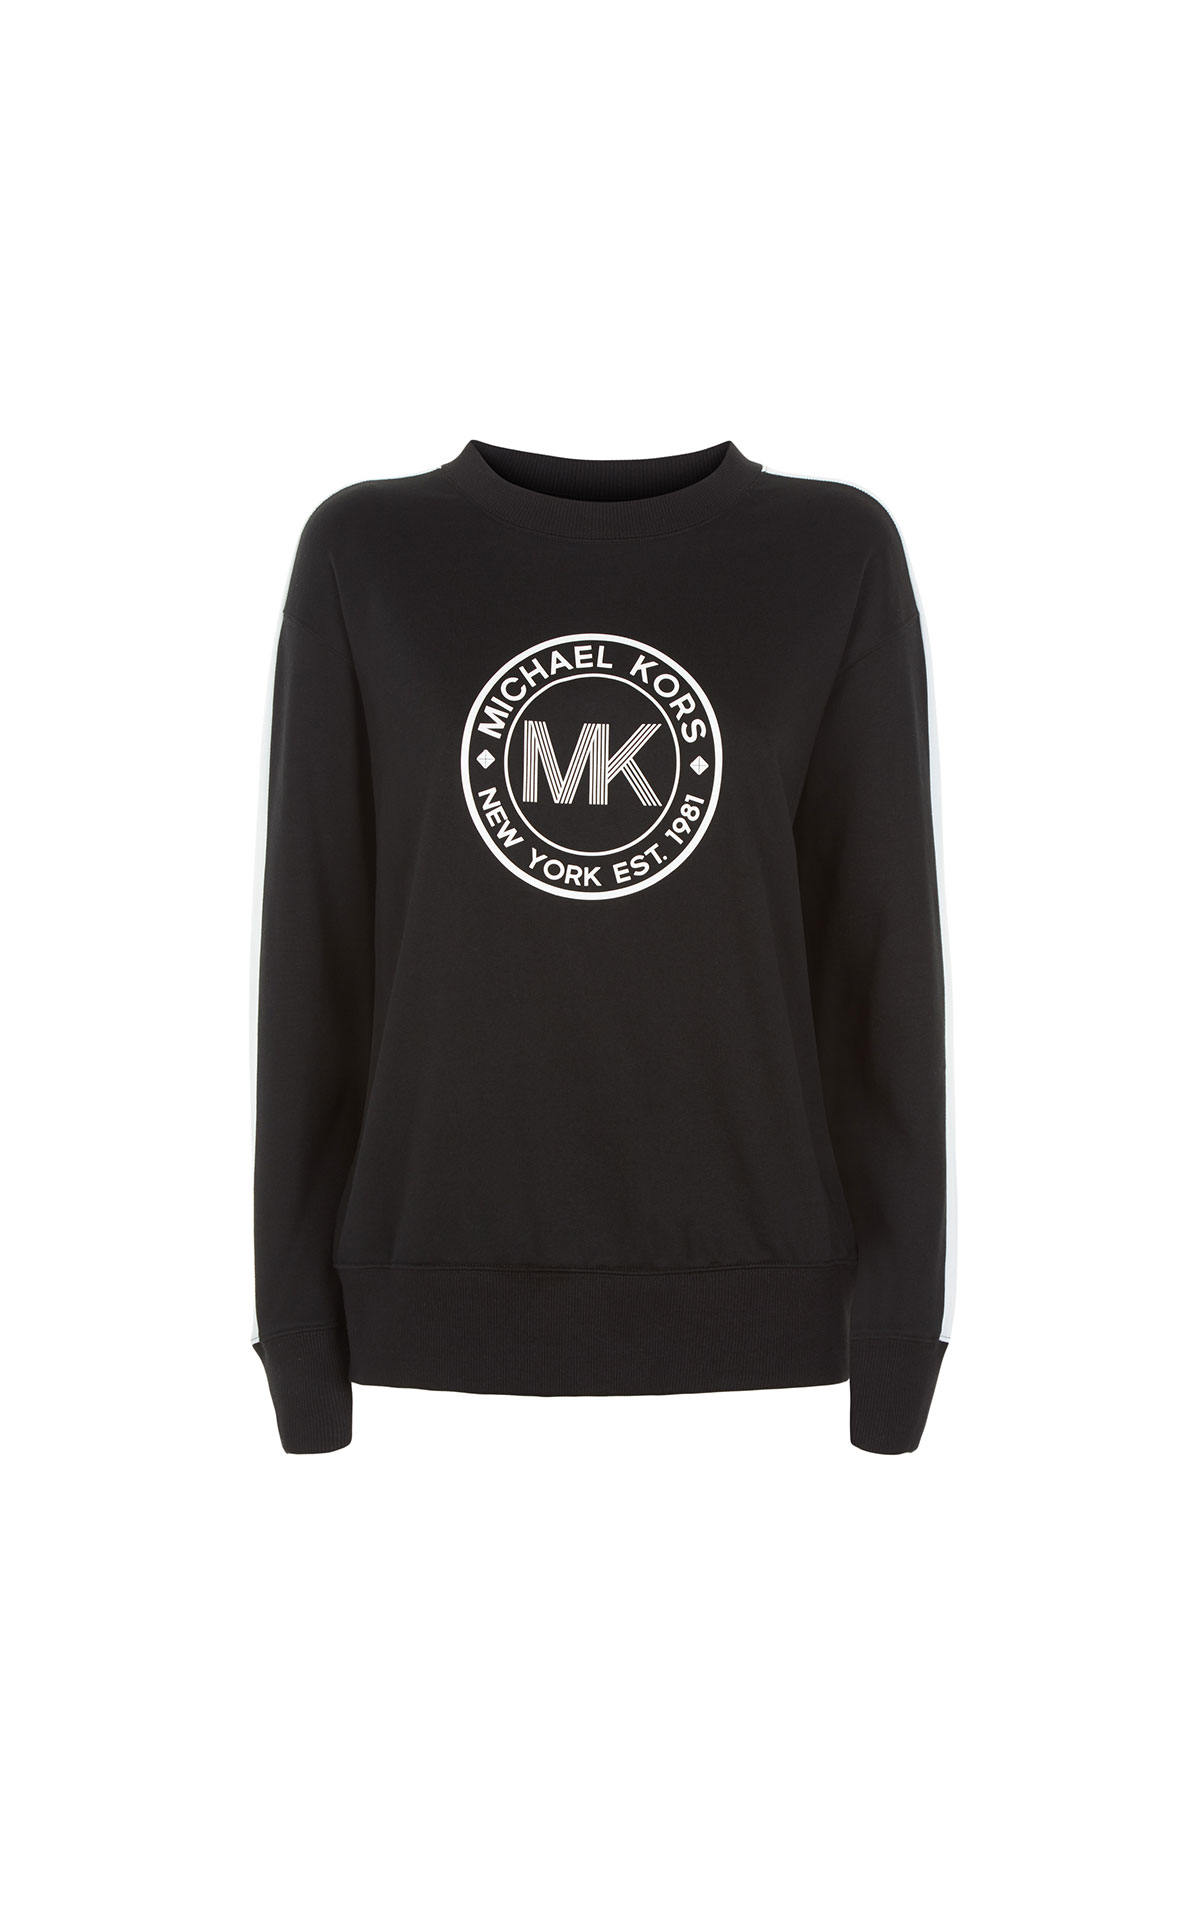 Michael Kors Logo sweatshirt at The Bicester Village Shopping Collection